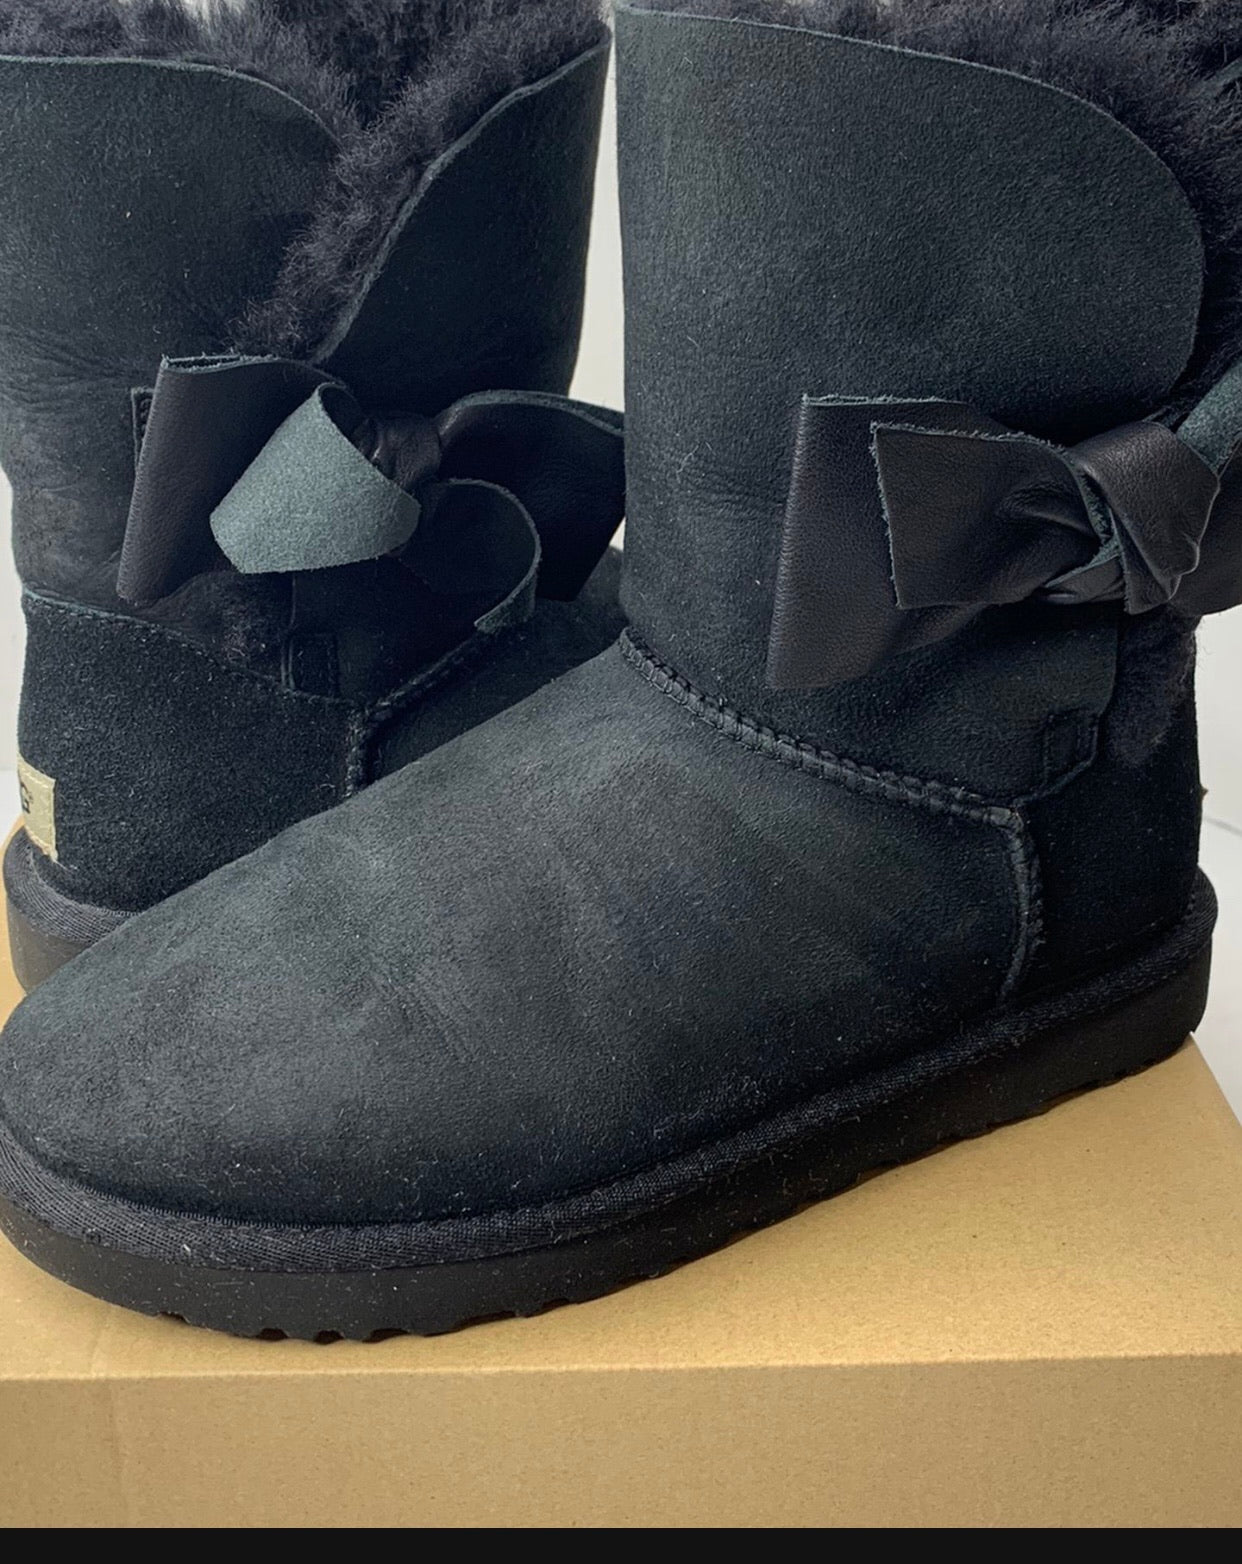 UGG Daelynn Black suede shearling mid calf boot Size 8 WORN ONCE